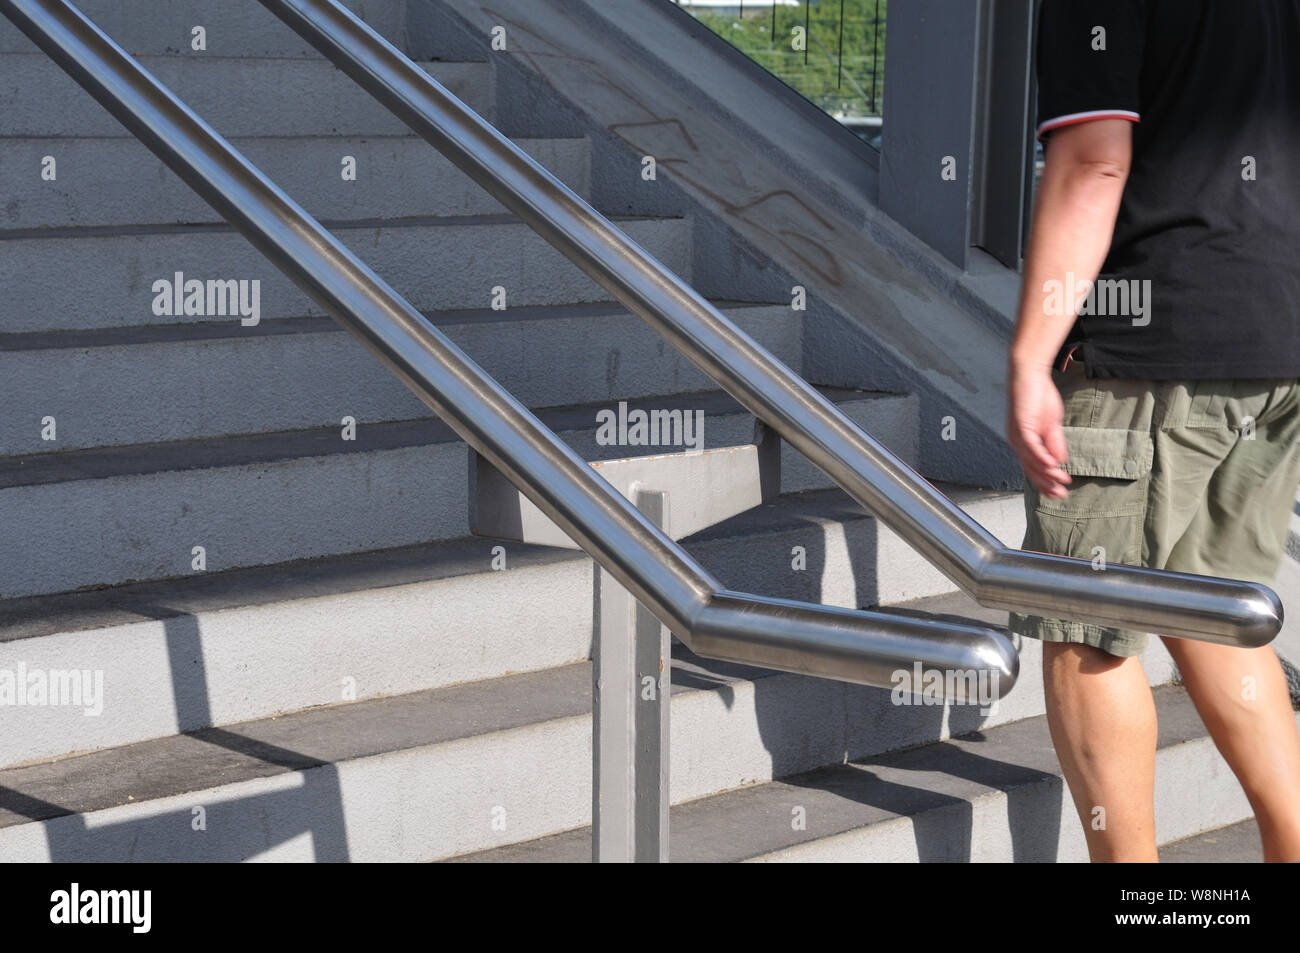 Concrete Steps With Railing Of Stainless Steel Leading To | Railing For Concrete Steps | Stairwell | Retaining Wall | Concrete Slab Detail | Commercial | Safety